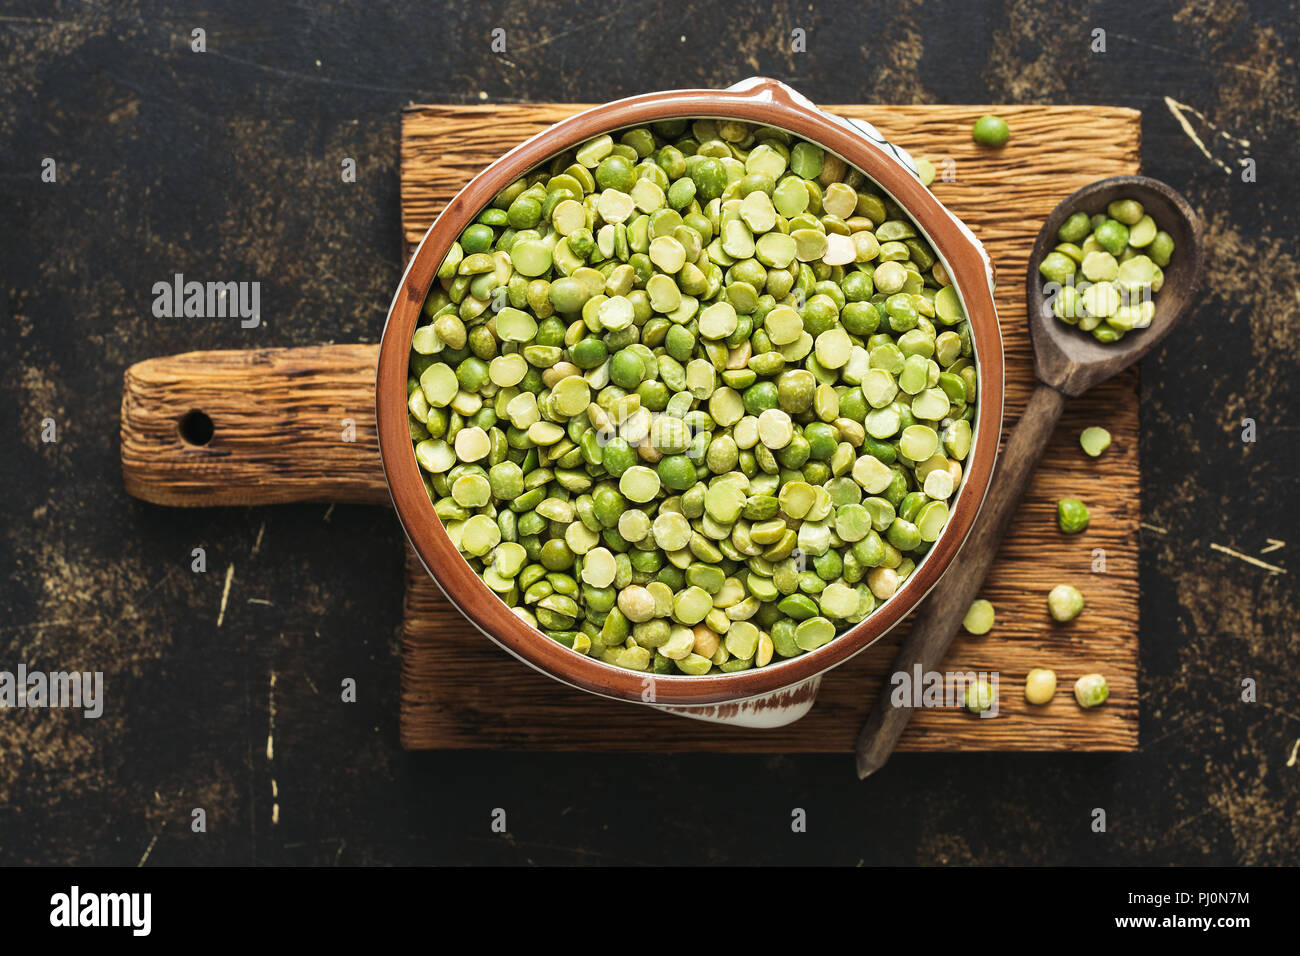 Green split peas in a bowl on a cutting board. Top view. - Stock Image